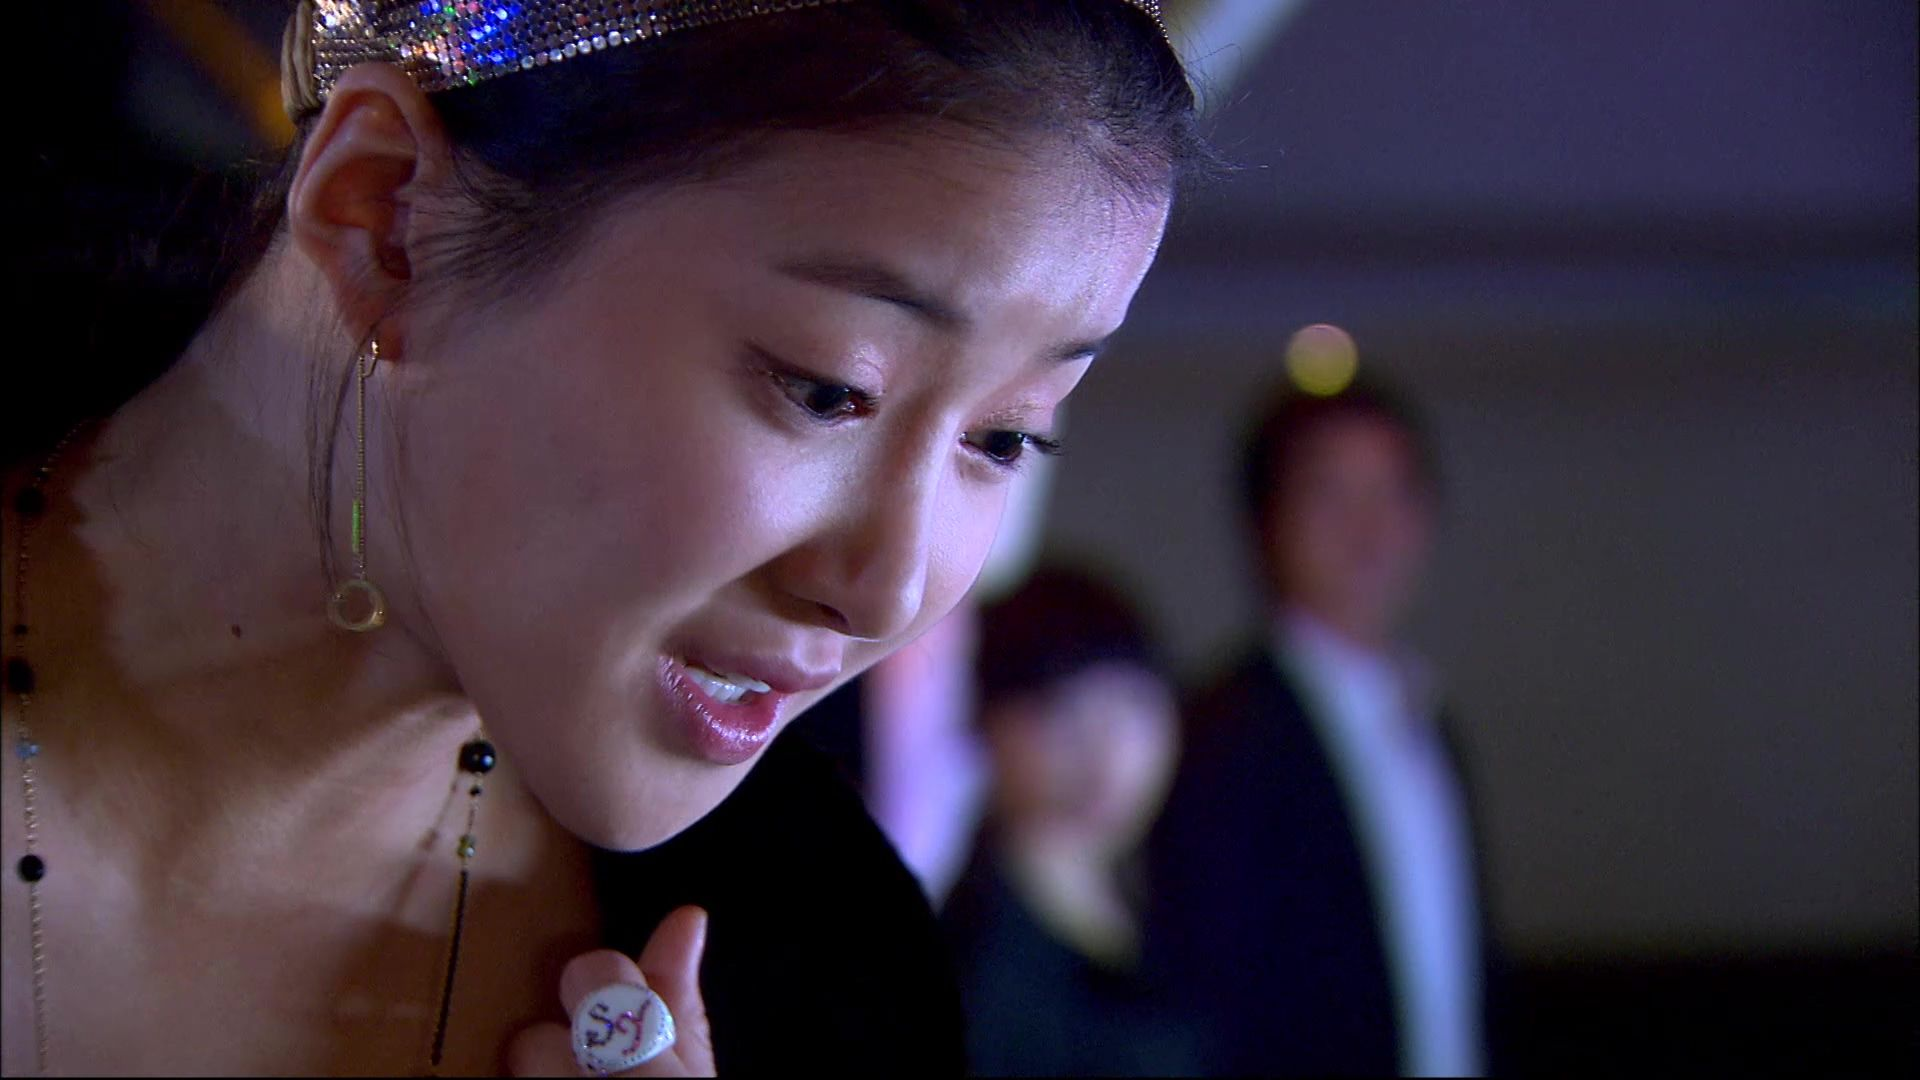 Boys Over Flowers Episode 1 - 꽃보다 남자 - Watch Full